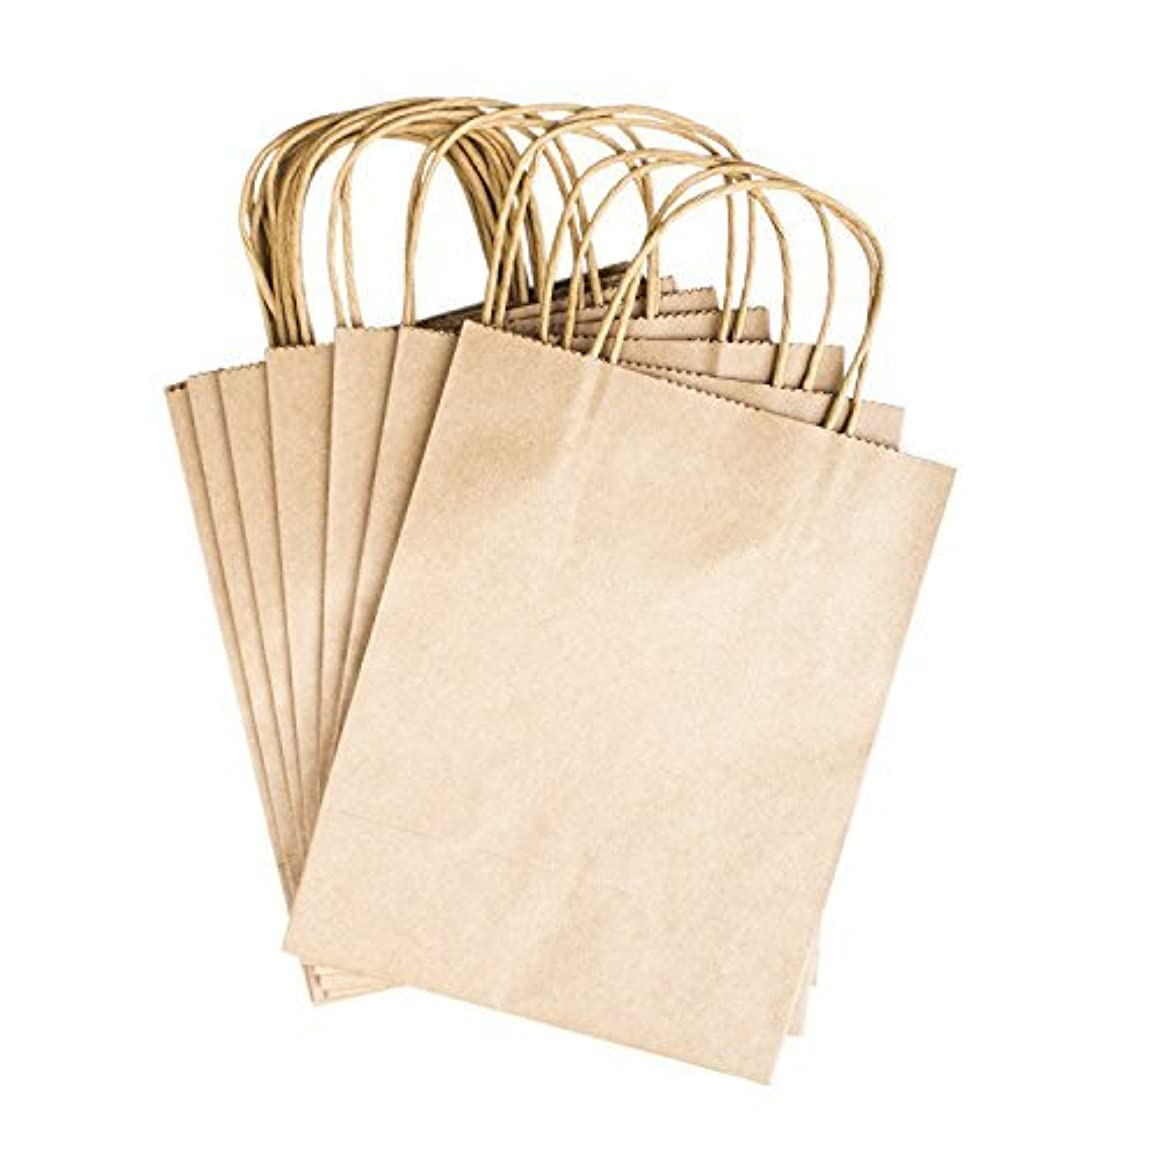 Paper Gift Bags with Handles 8